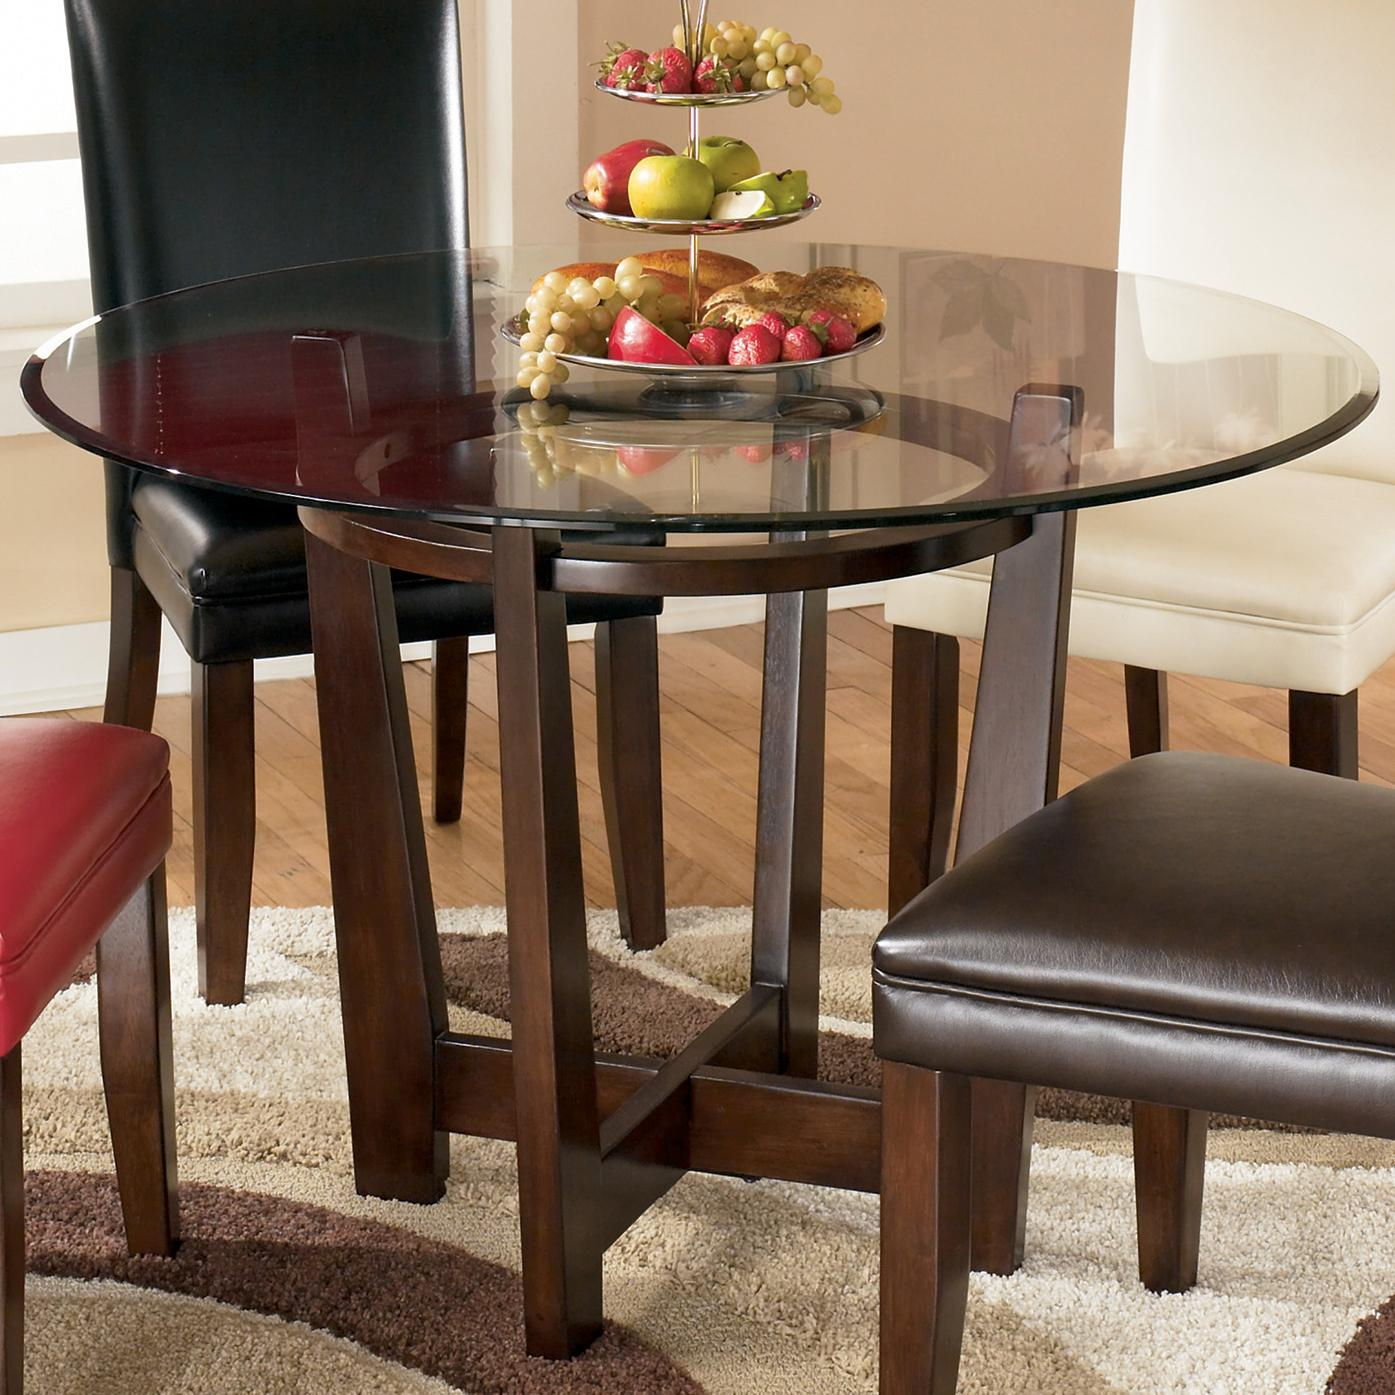 Round Glass Top Dining Table Charrell Round Glass Top Table By Signature Design By Ashley At Value City Furniture